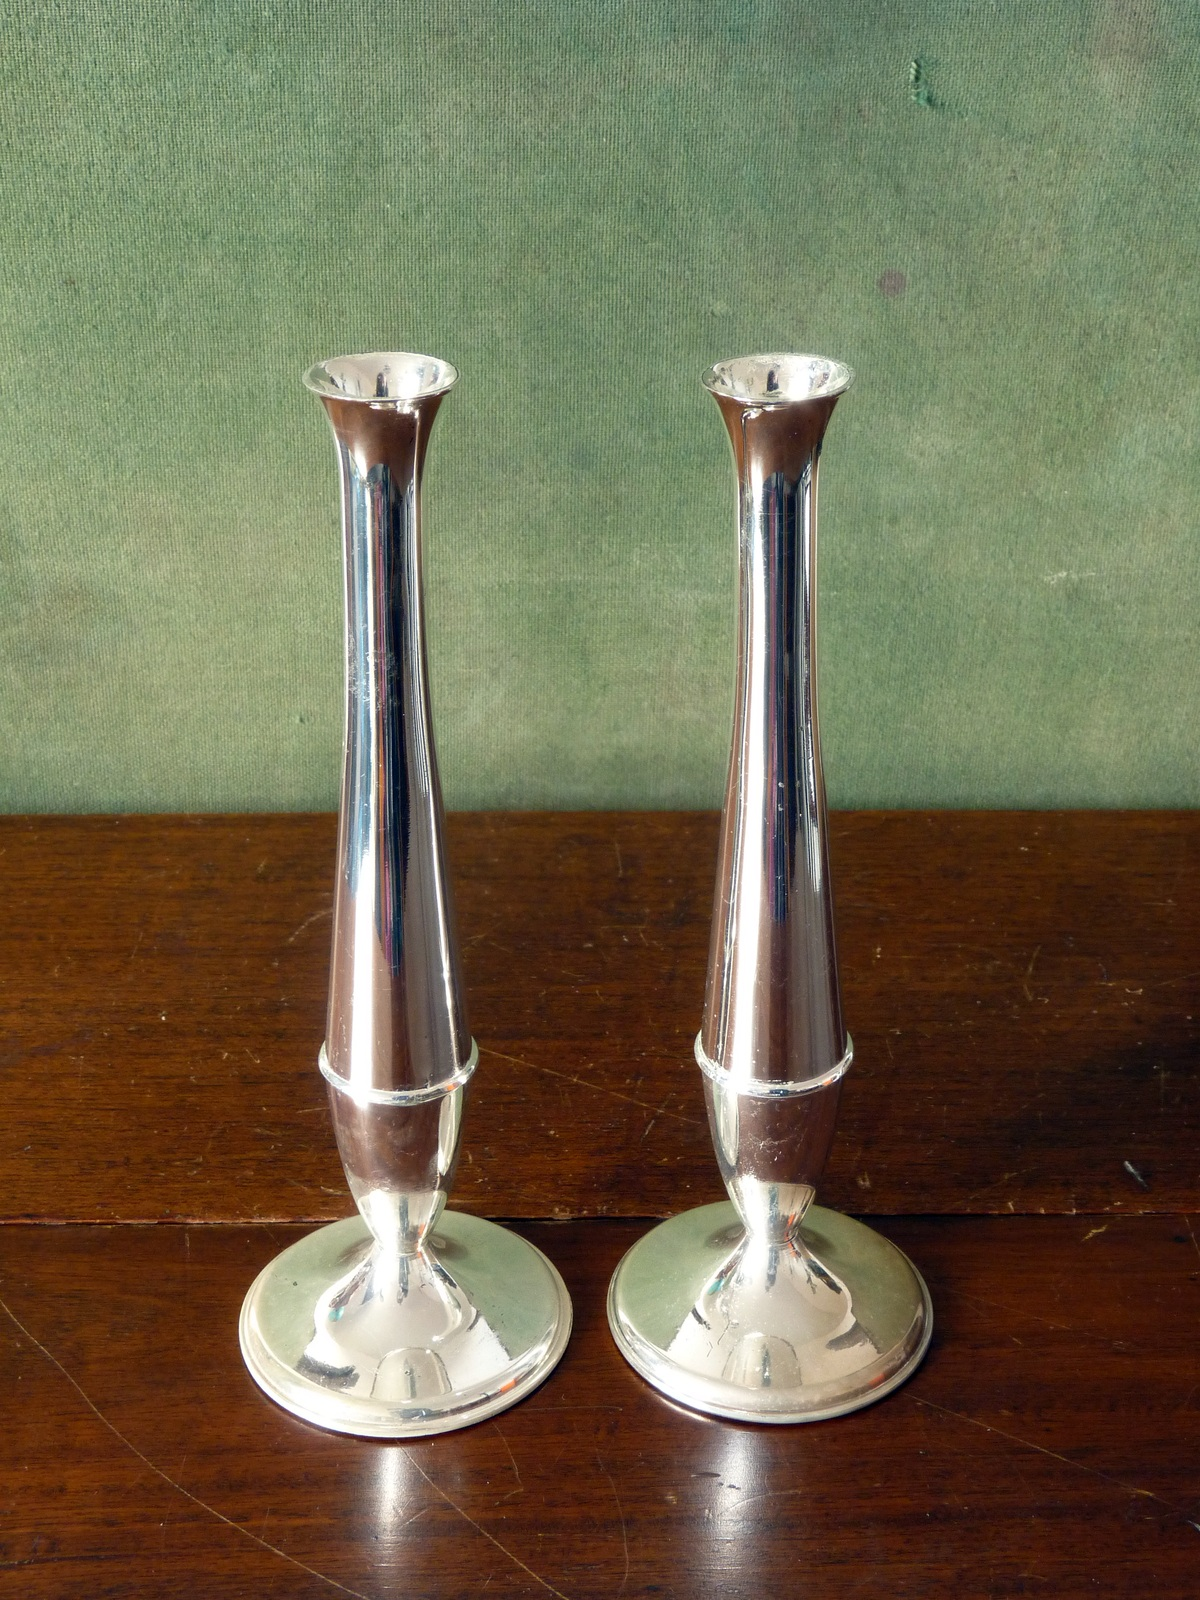 Minimalist Zinc-Silver Plated Posy Vases by HBC